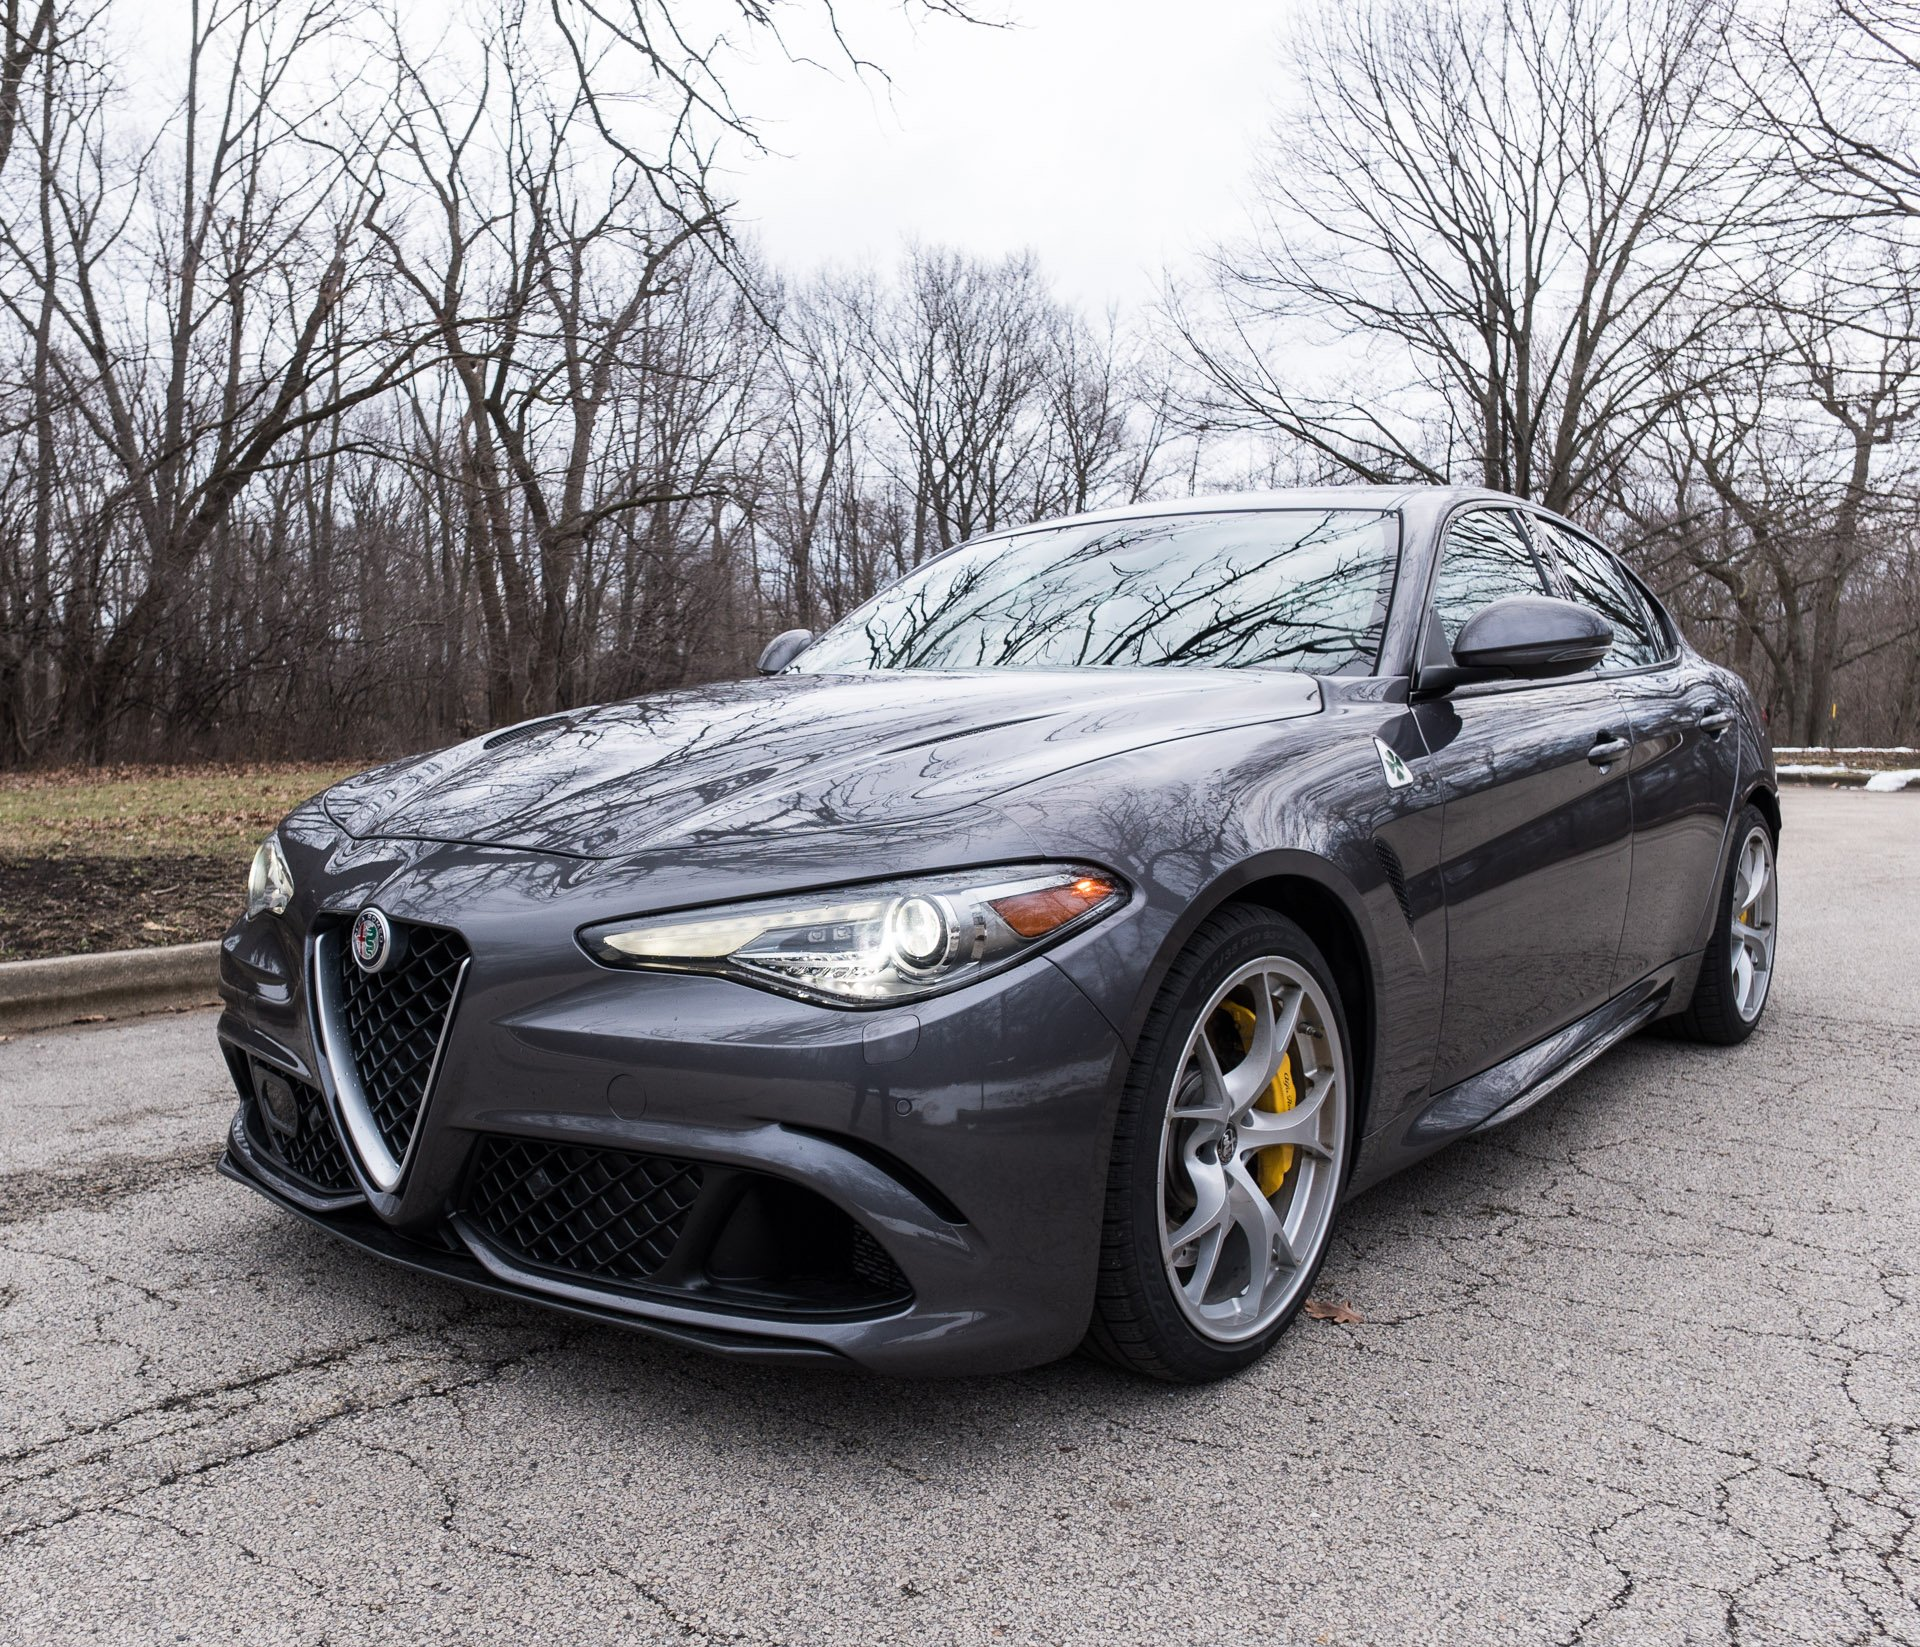 2017 alfa romeo giulia quadrifoglio review 95 octane. Black Bedroom Furniture Sets. Home Design Ideas